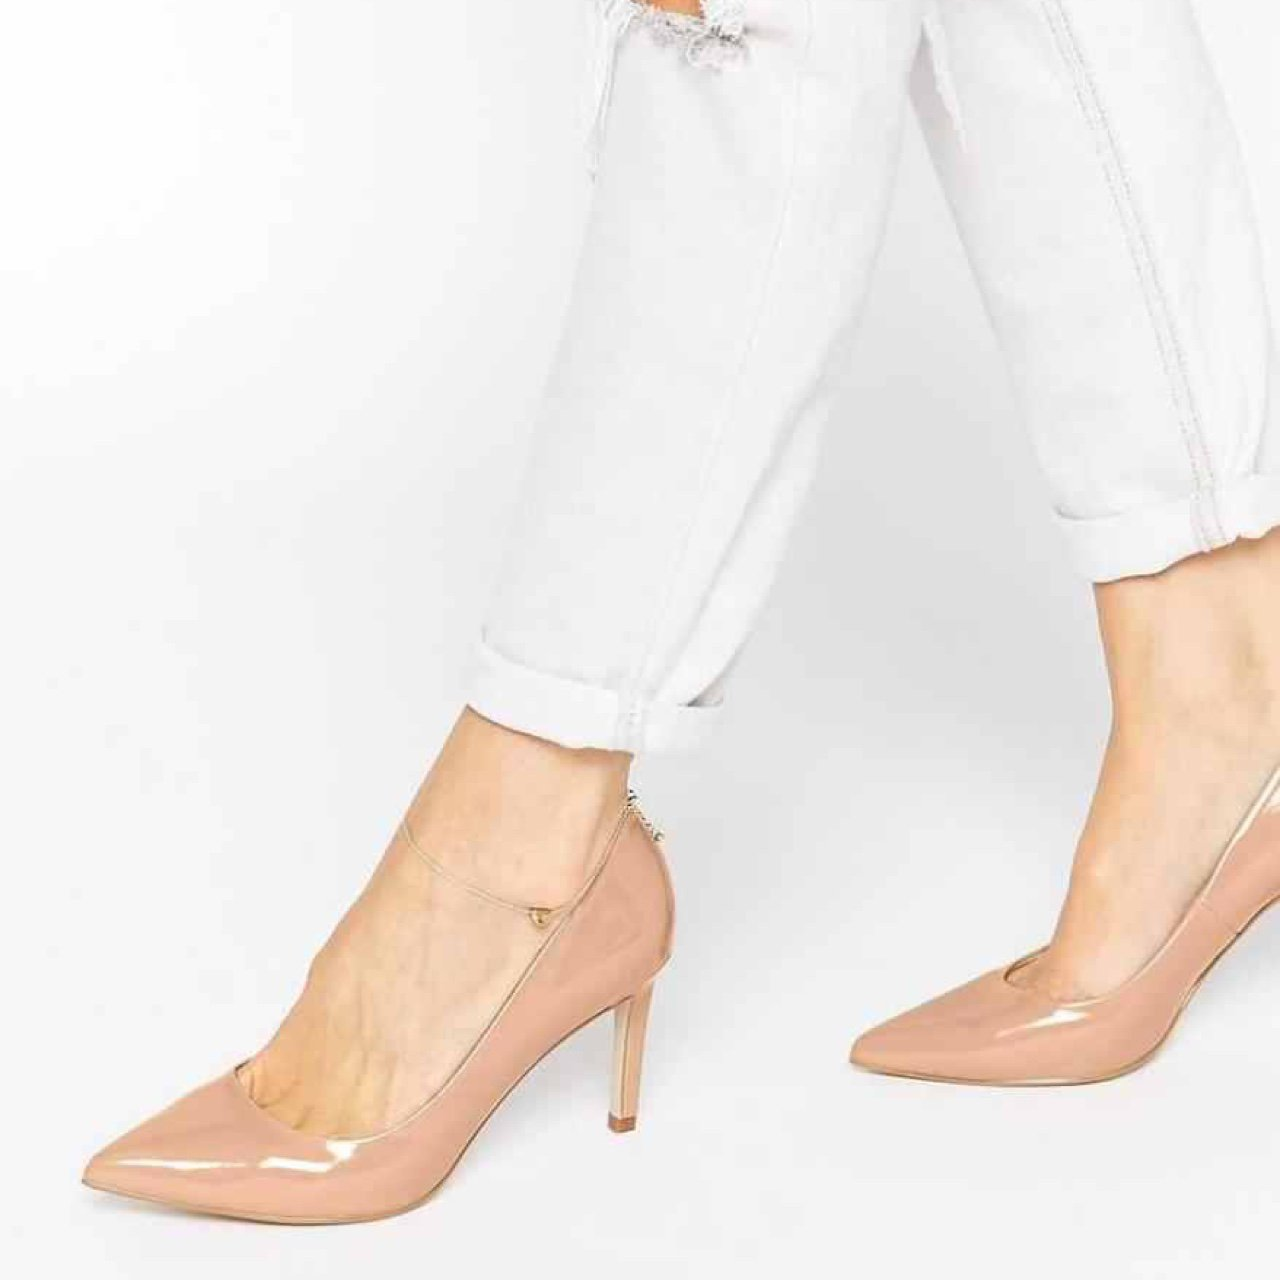 7fac9946b38 Asos nude pointed heels. Size 6. Only worn once for an Scuff - Depop